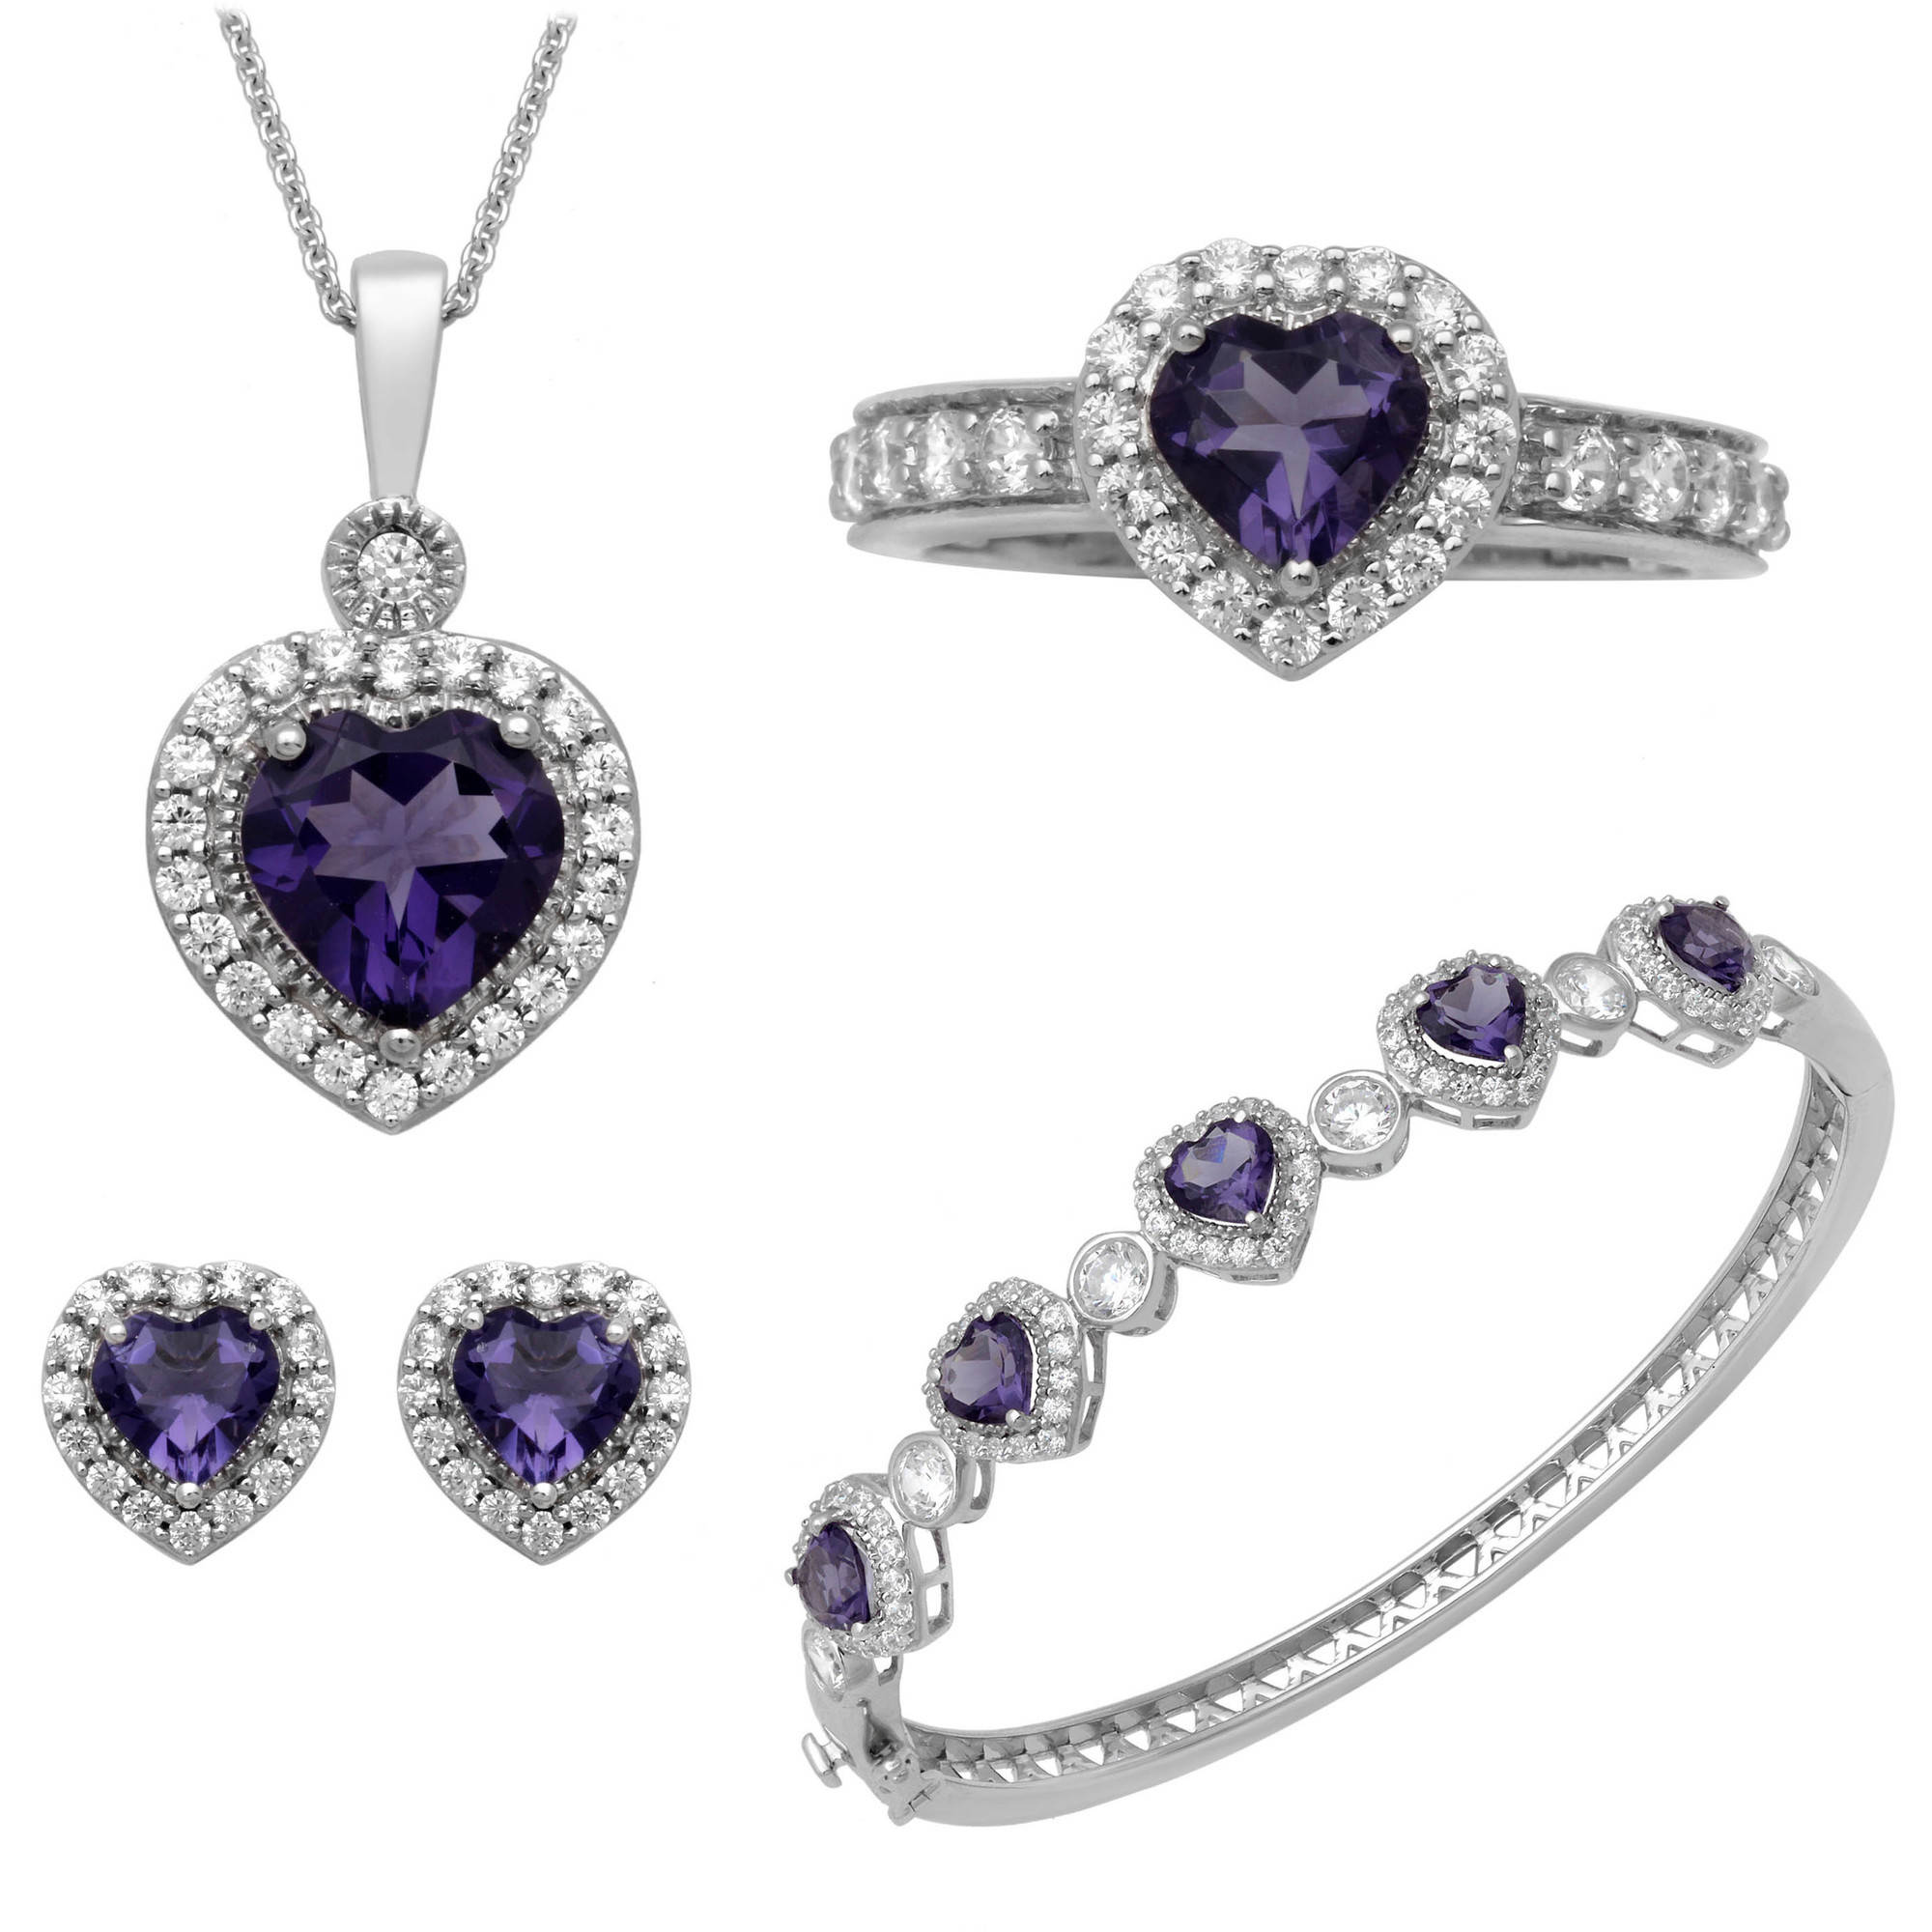 Heart Amethyst and Round Clear Cubic Zirconia Heart Ring, Pendant, Earrings and Bracelet Set in Brass by Generic